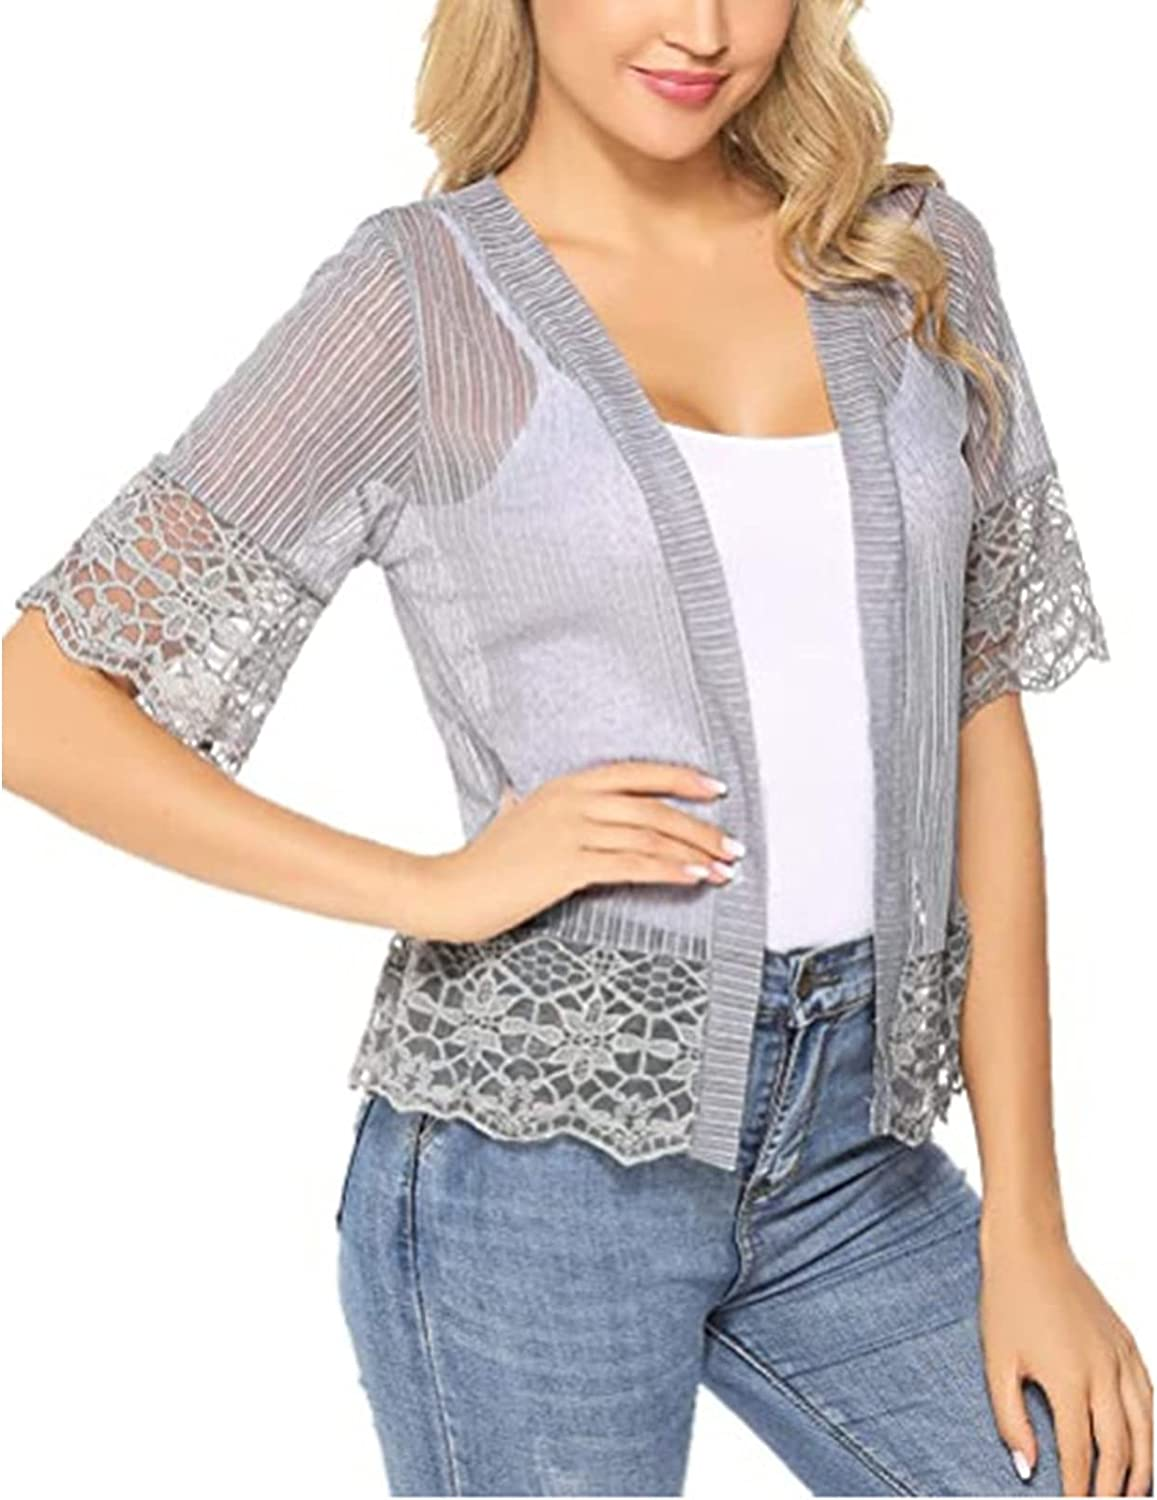 Women Short Sleeve Lace Shrug Open Front Cardigan Button Down See Through Patchwork Y2K Mesh Crop Cardigans